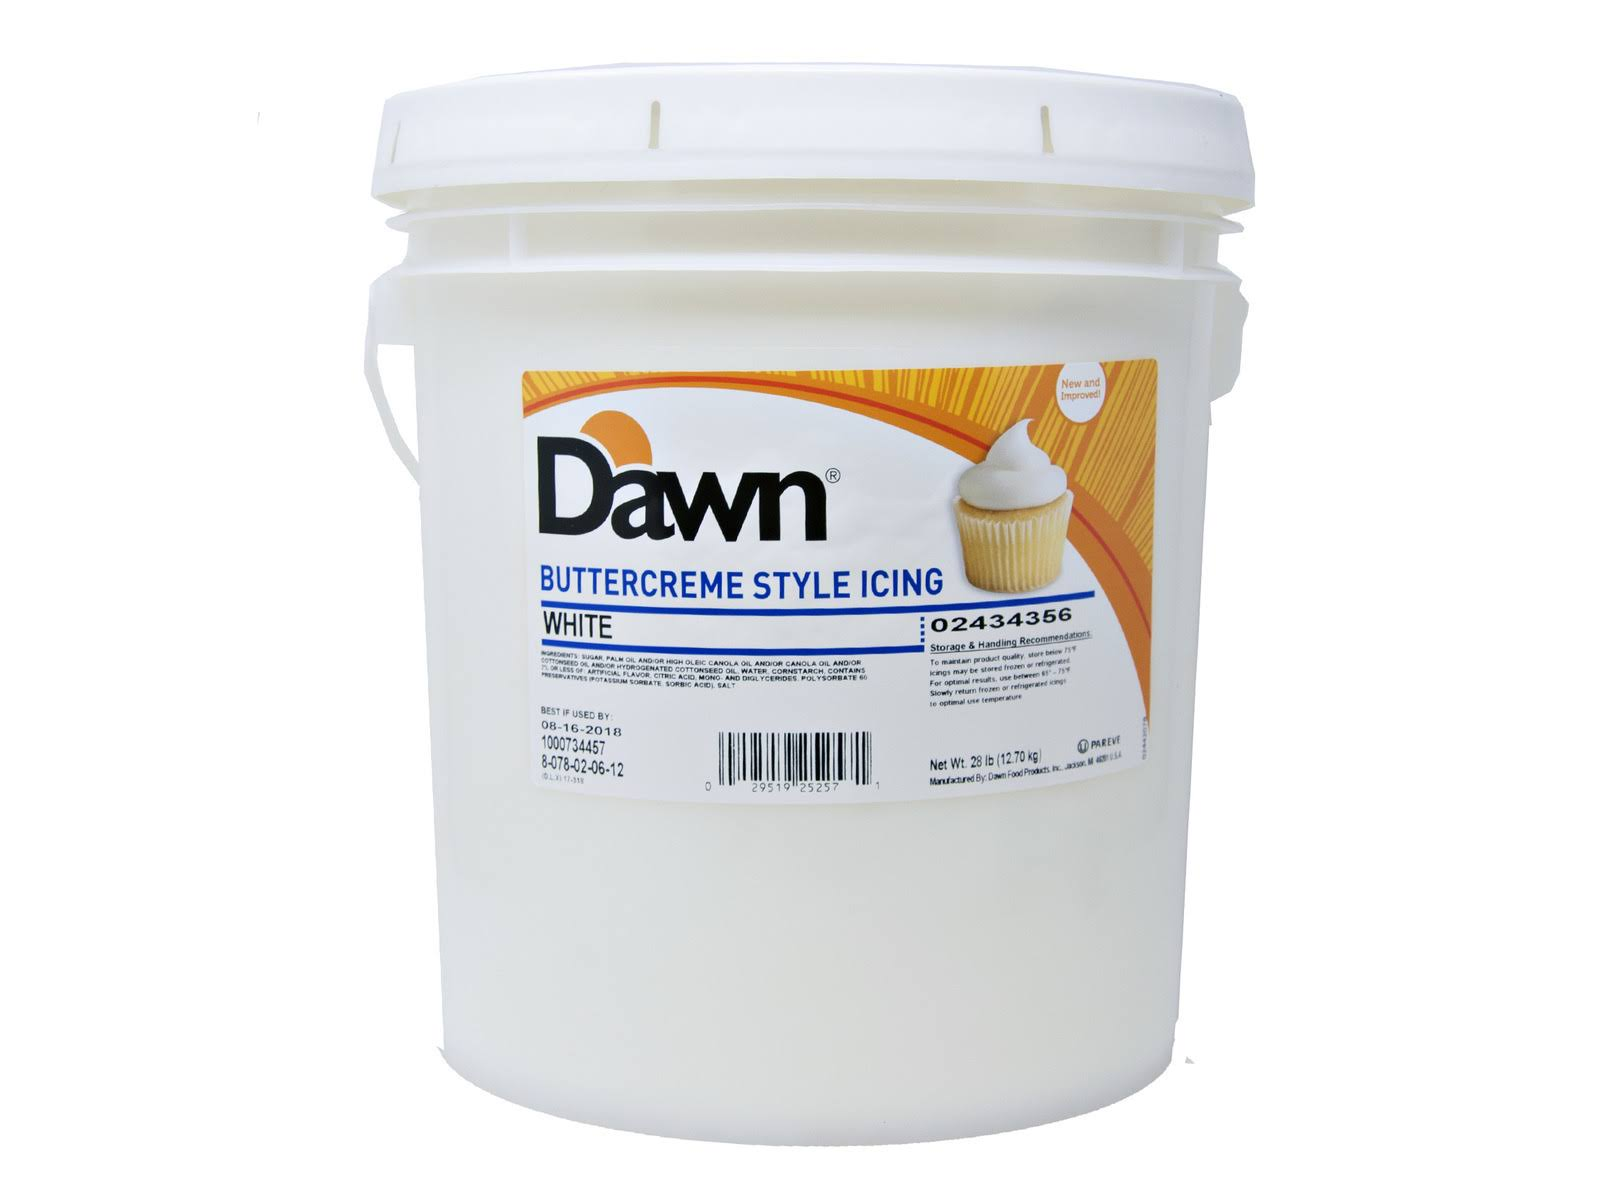 Dawn White Buttercreme Icing 28lb, 163704, Price/CS